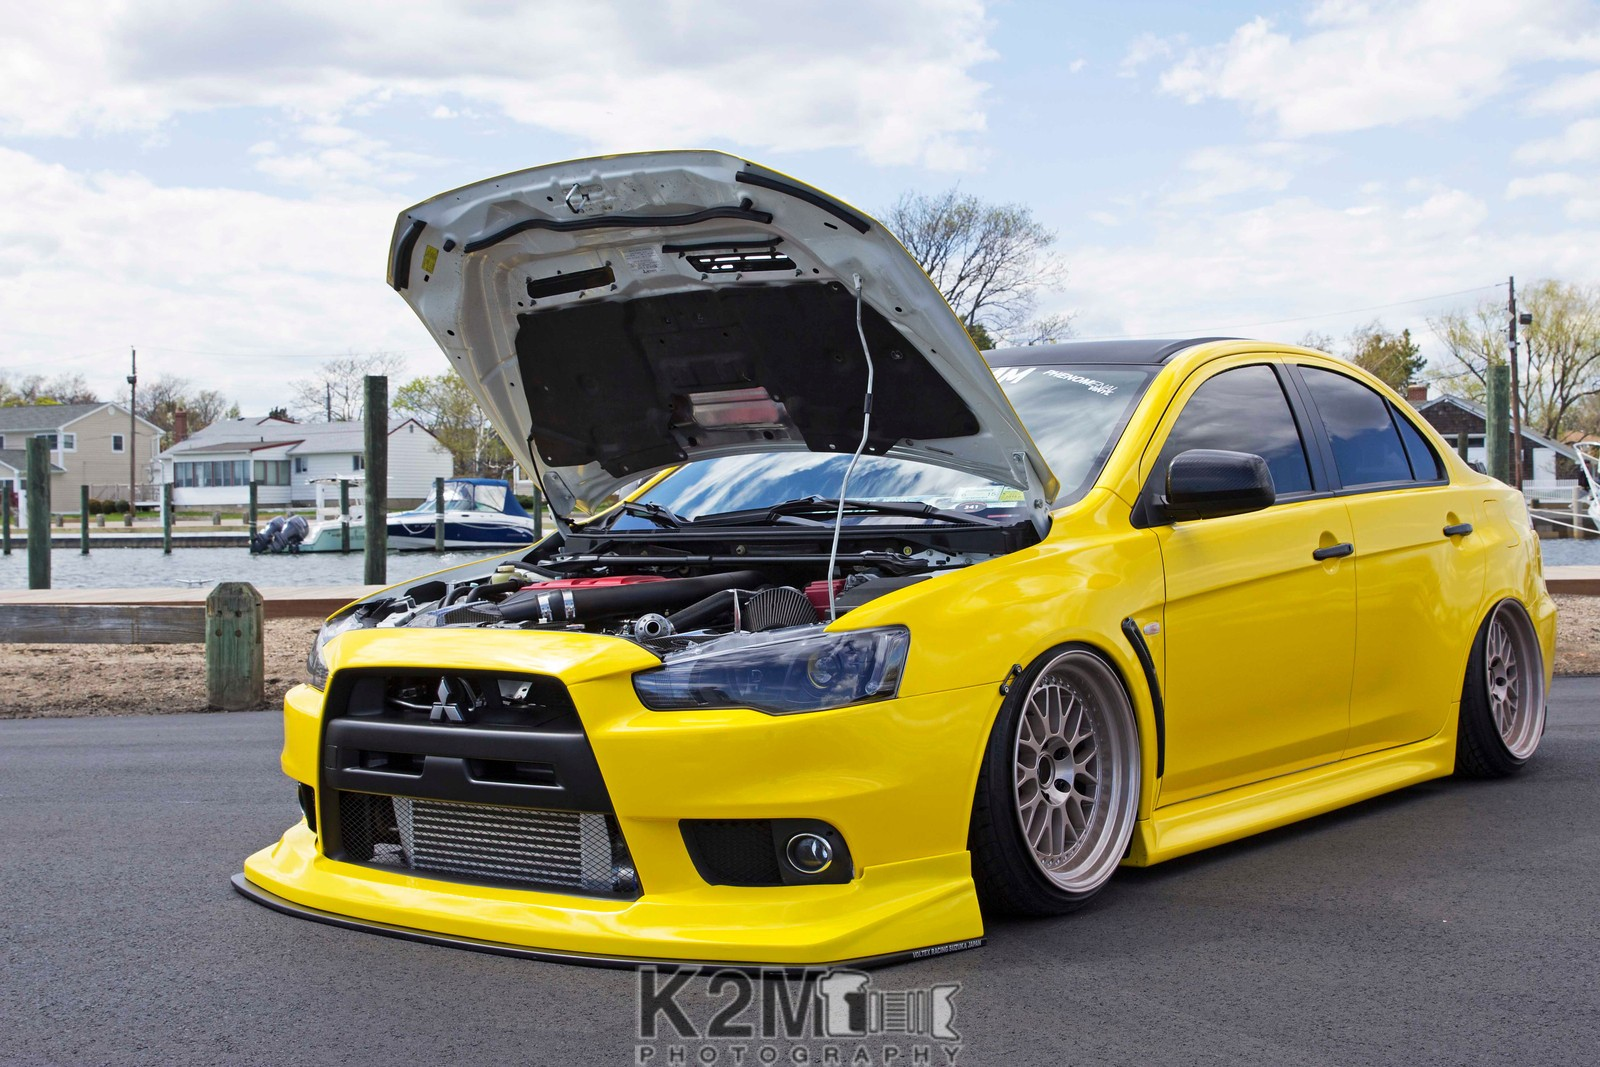 Evo 10 Wallpaper Tuning Car Yellow Cars Mitsubishi Lancer Evo X Wallpapers Hd